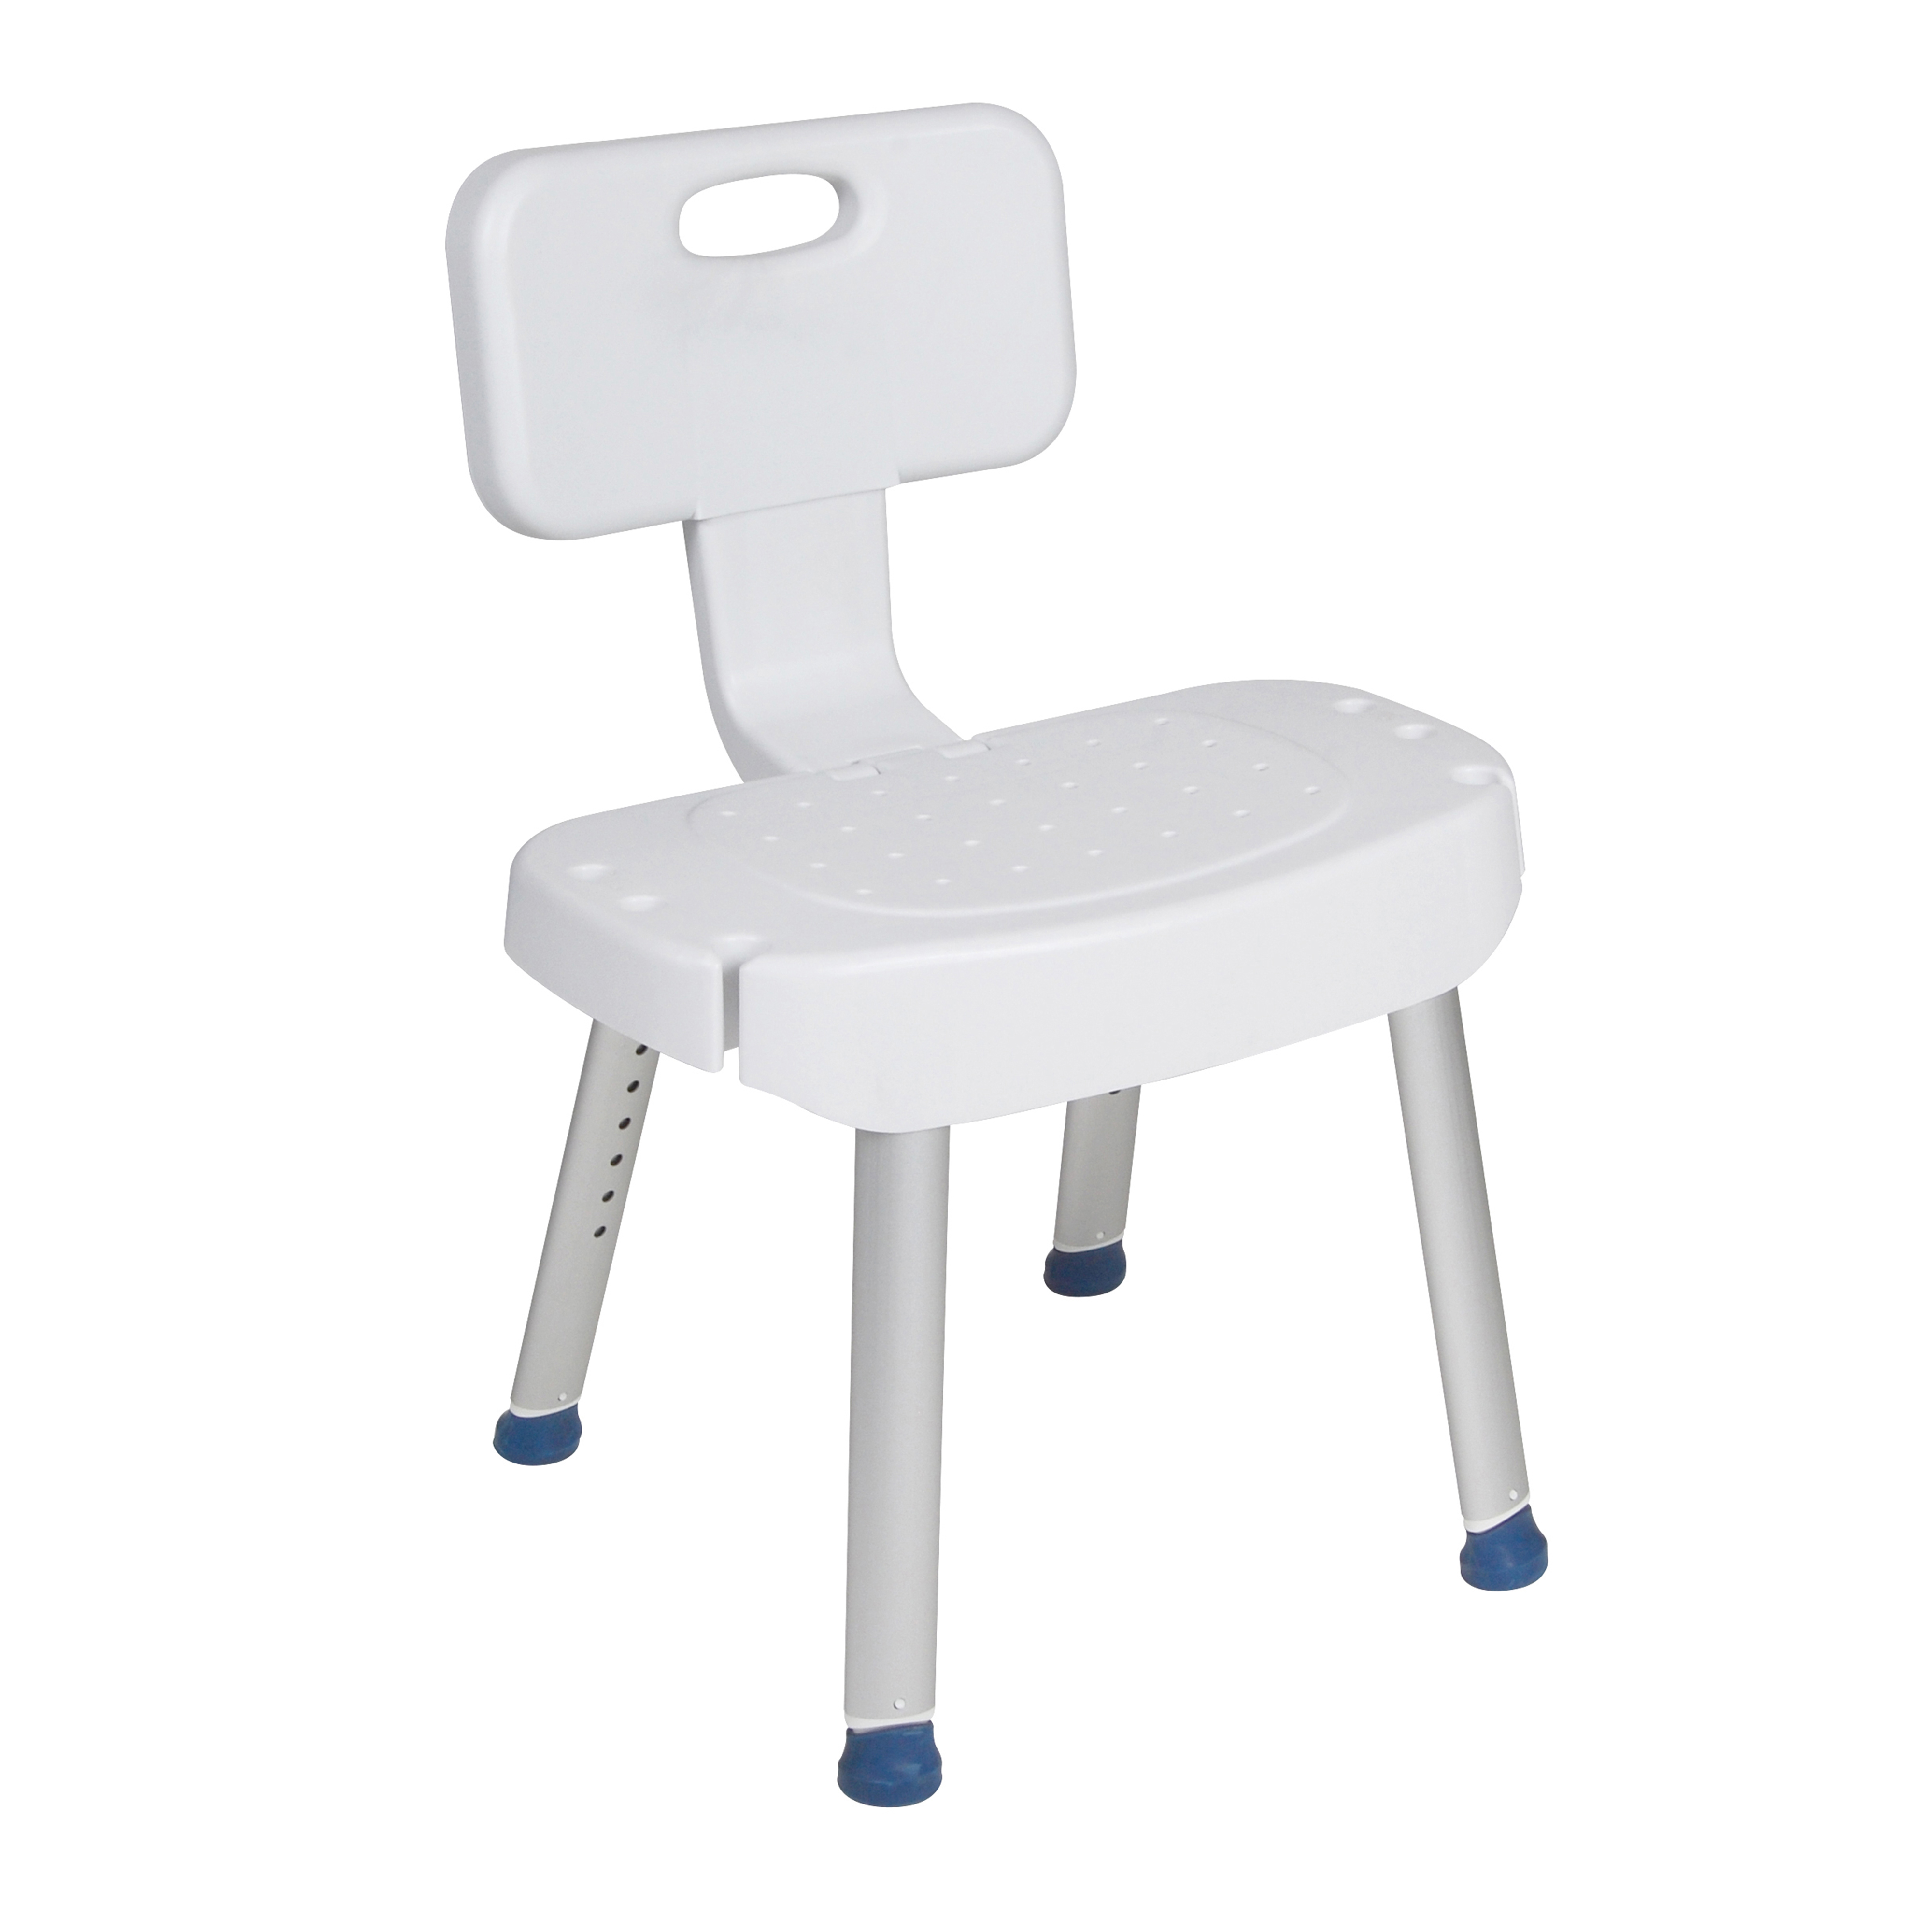 medical shower chairs serta jennings chair review drive bathroom safety with folding back walmart com